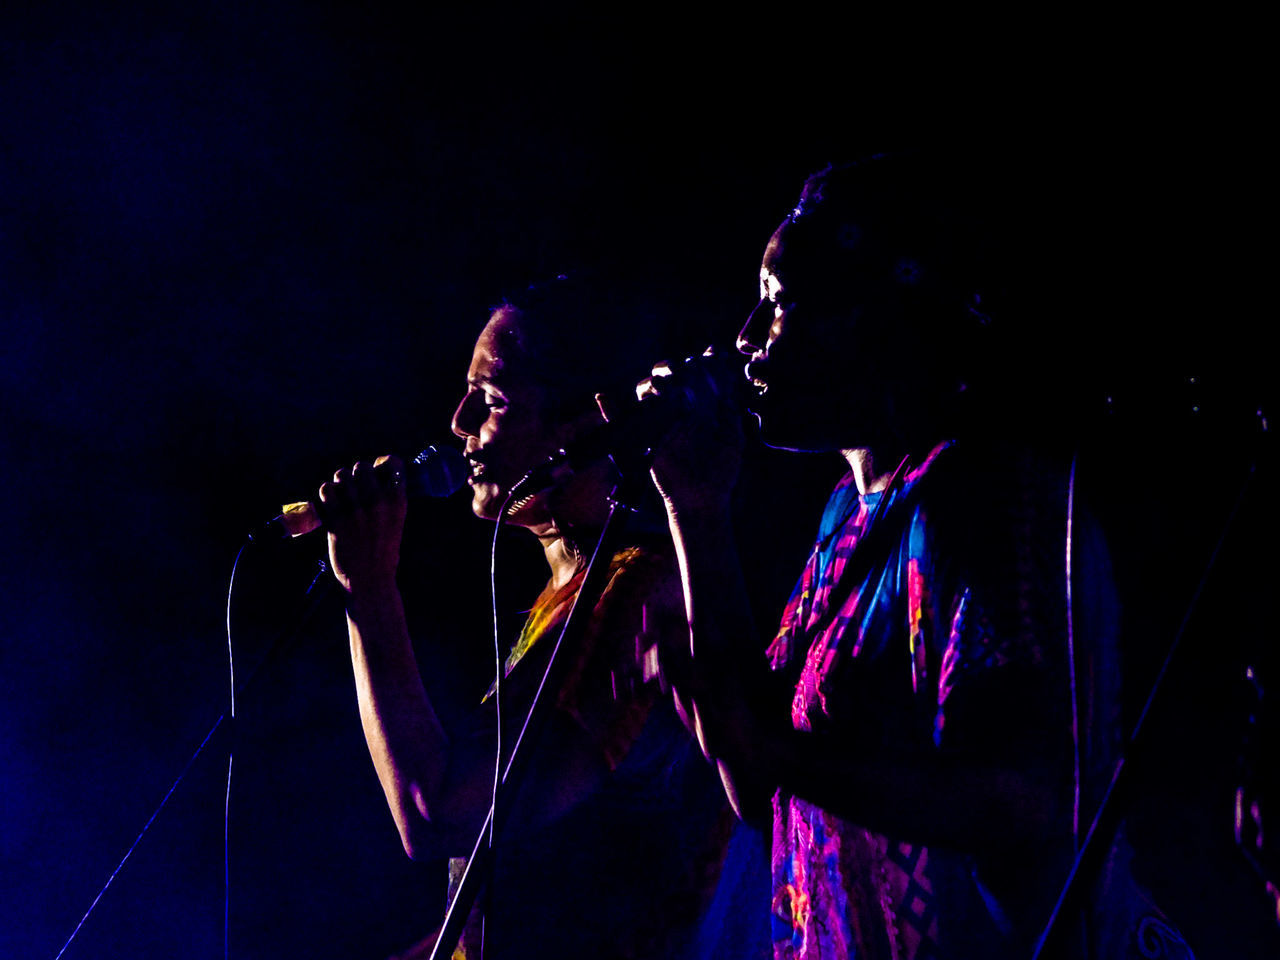 Two Women Singing On Stage